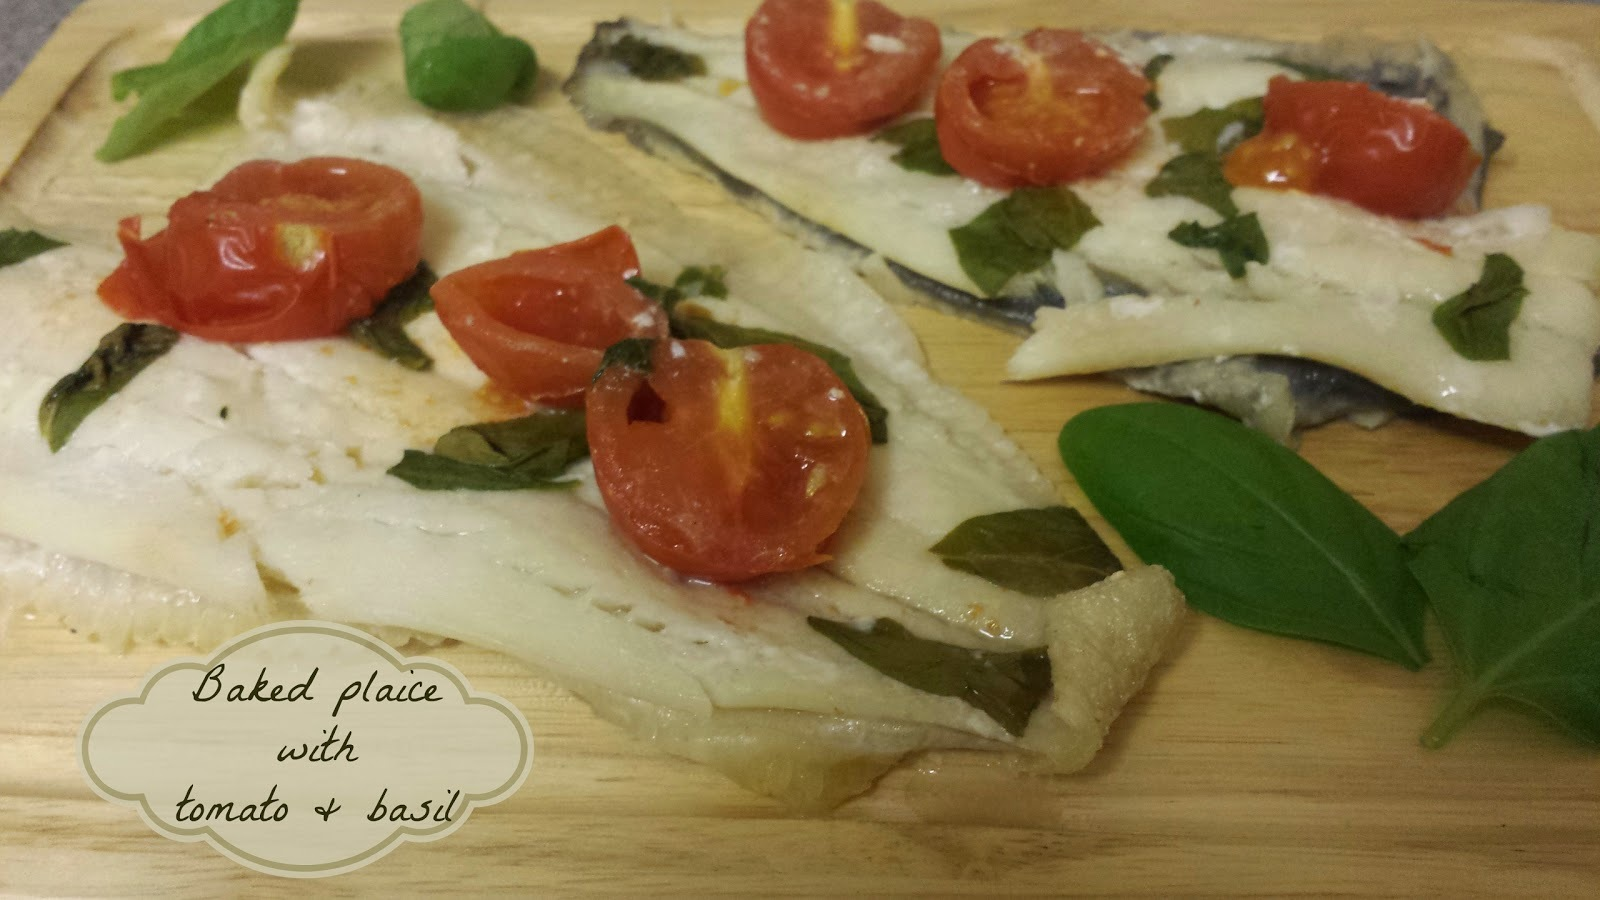 Recipe - Baked plaice with tomato & basil (#SlimmingWorld friendly)